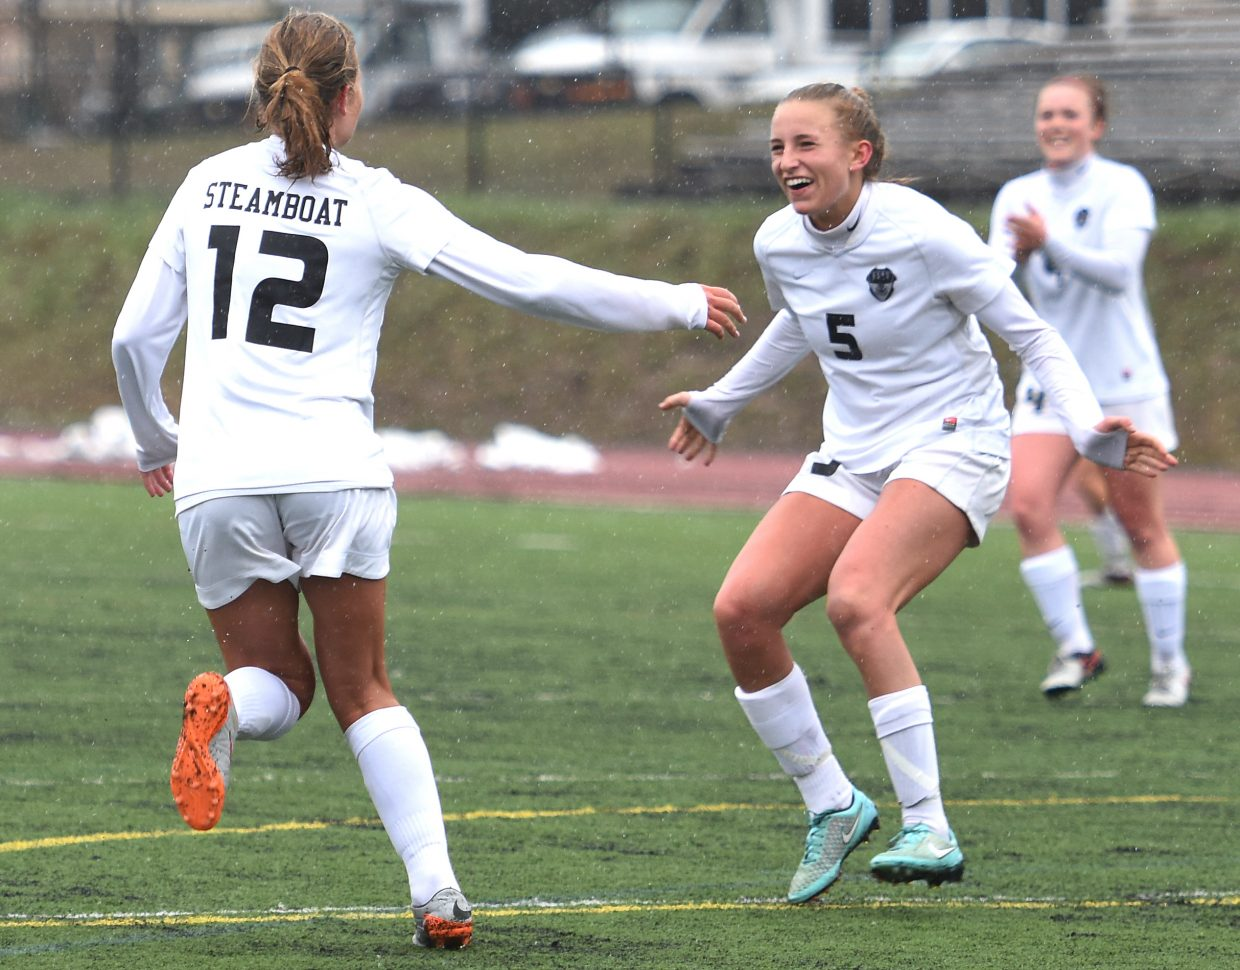 Brooke Buchanan, right, celebrates with Natalie Bohlmann after Bohlmann scored in the first half of Friday's game against Palisade.